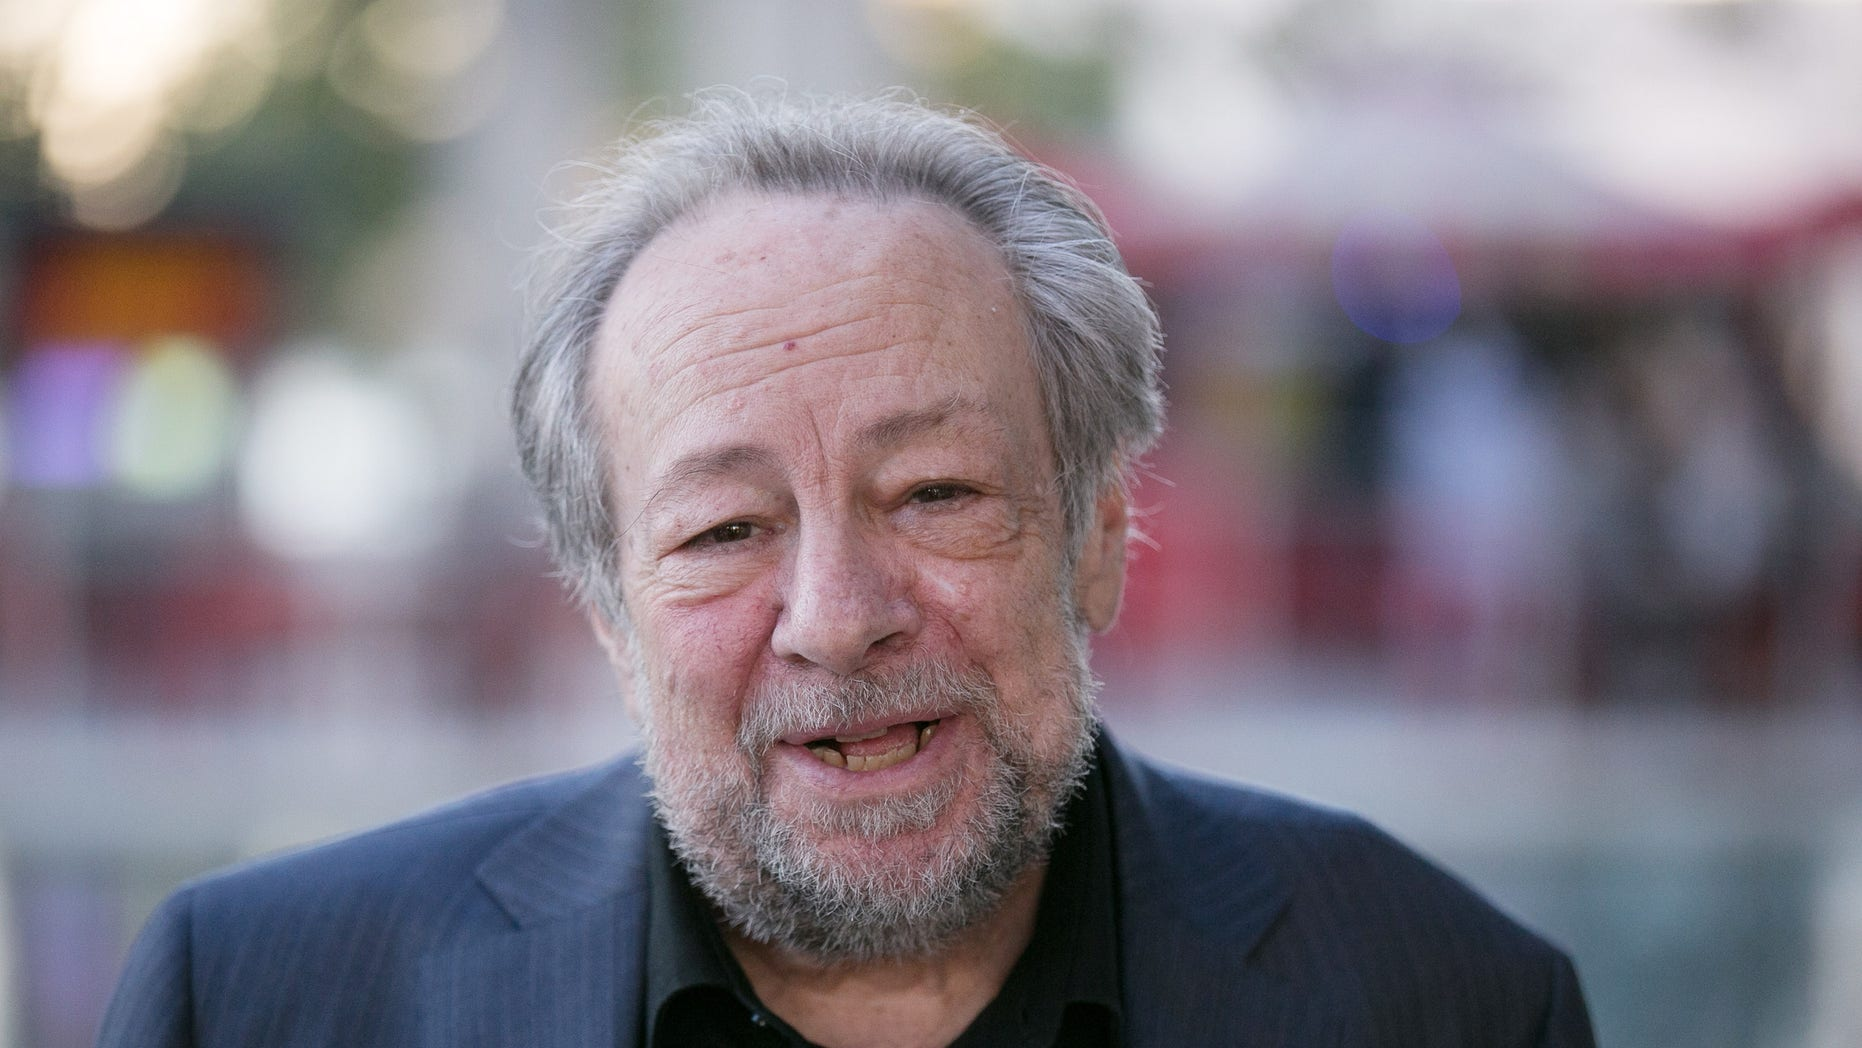 Ricky Jay, acclaimed magician, actor, and illusion consultant, dies at 72